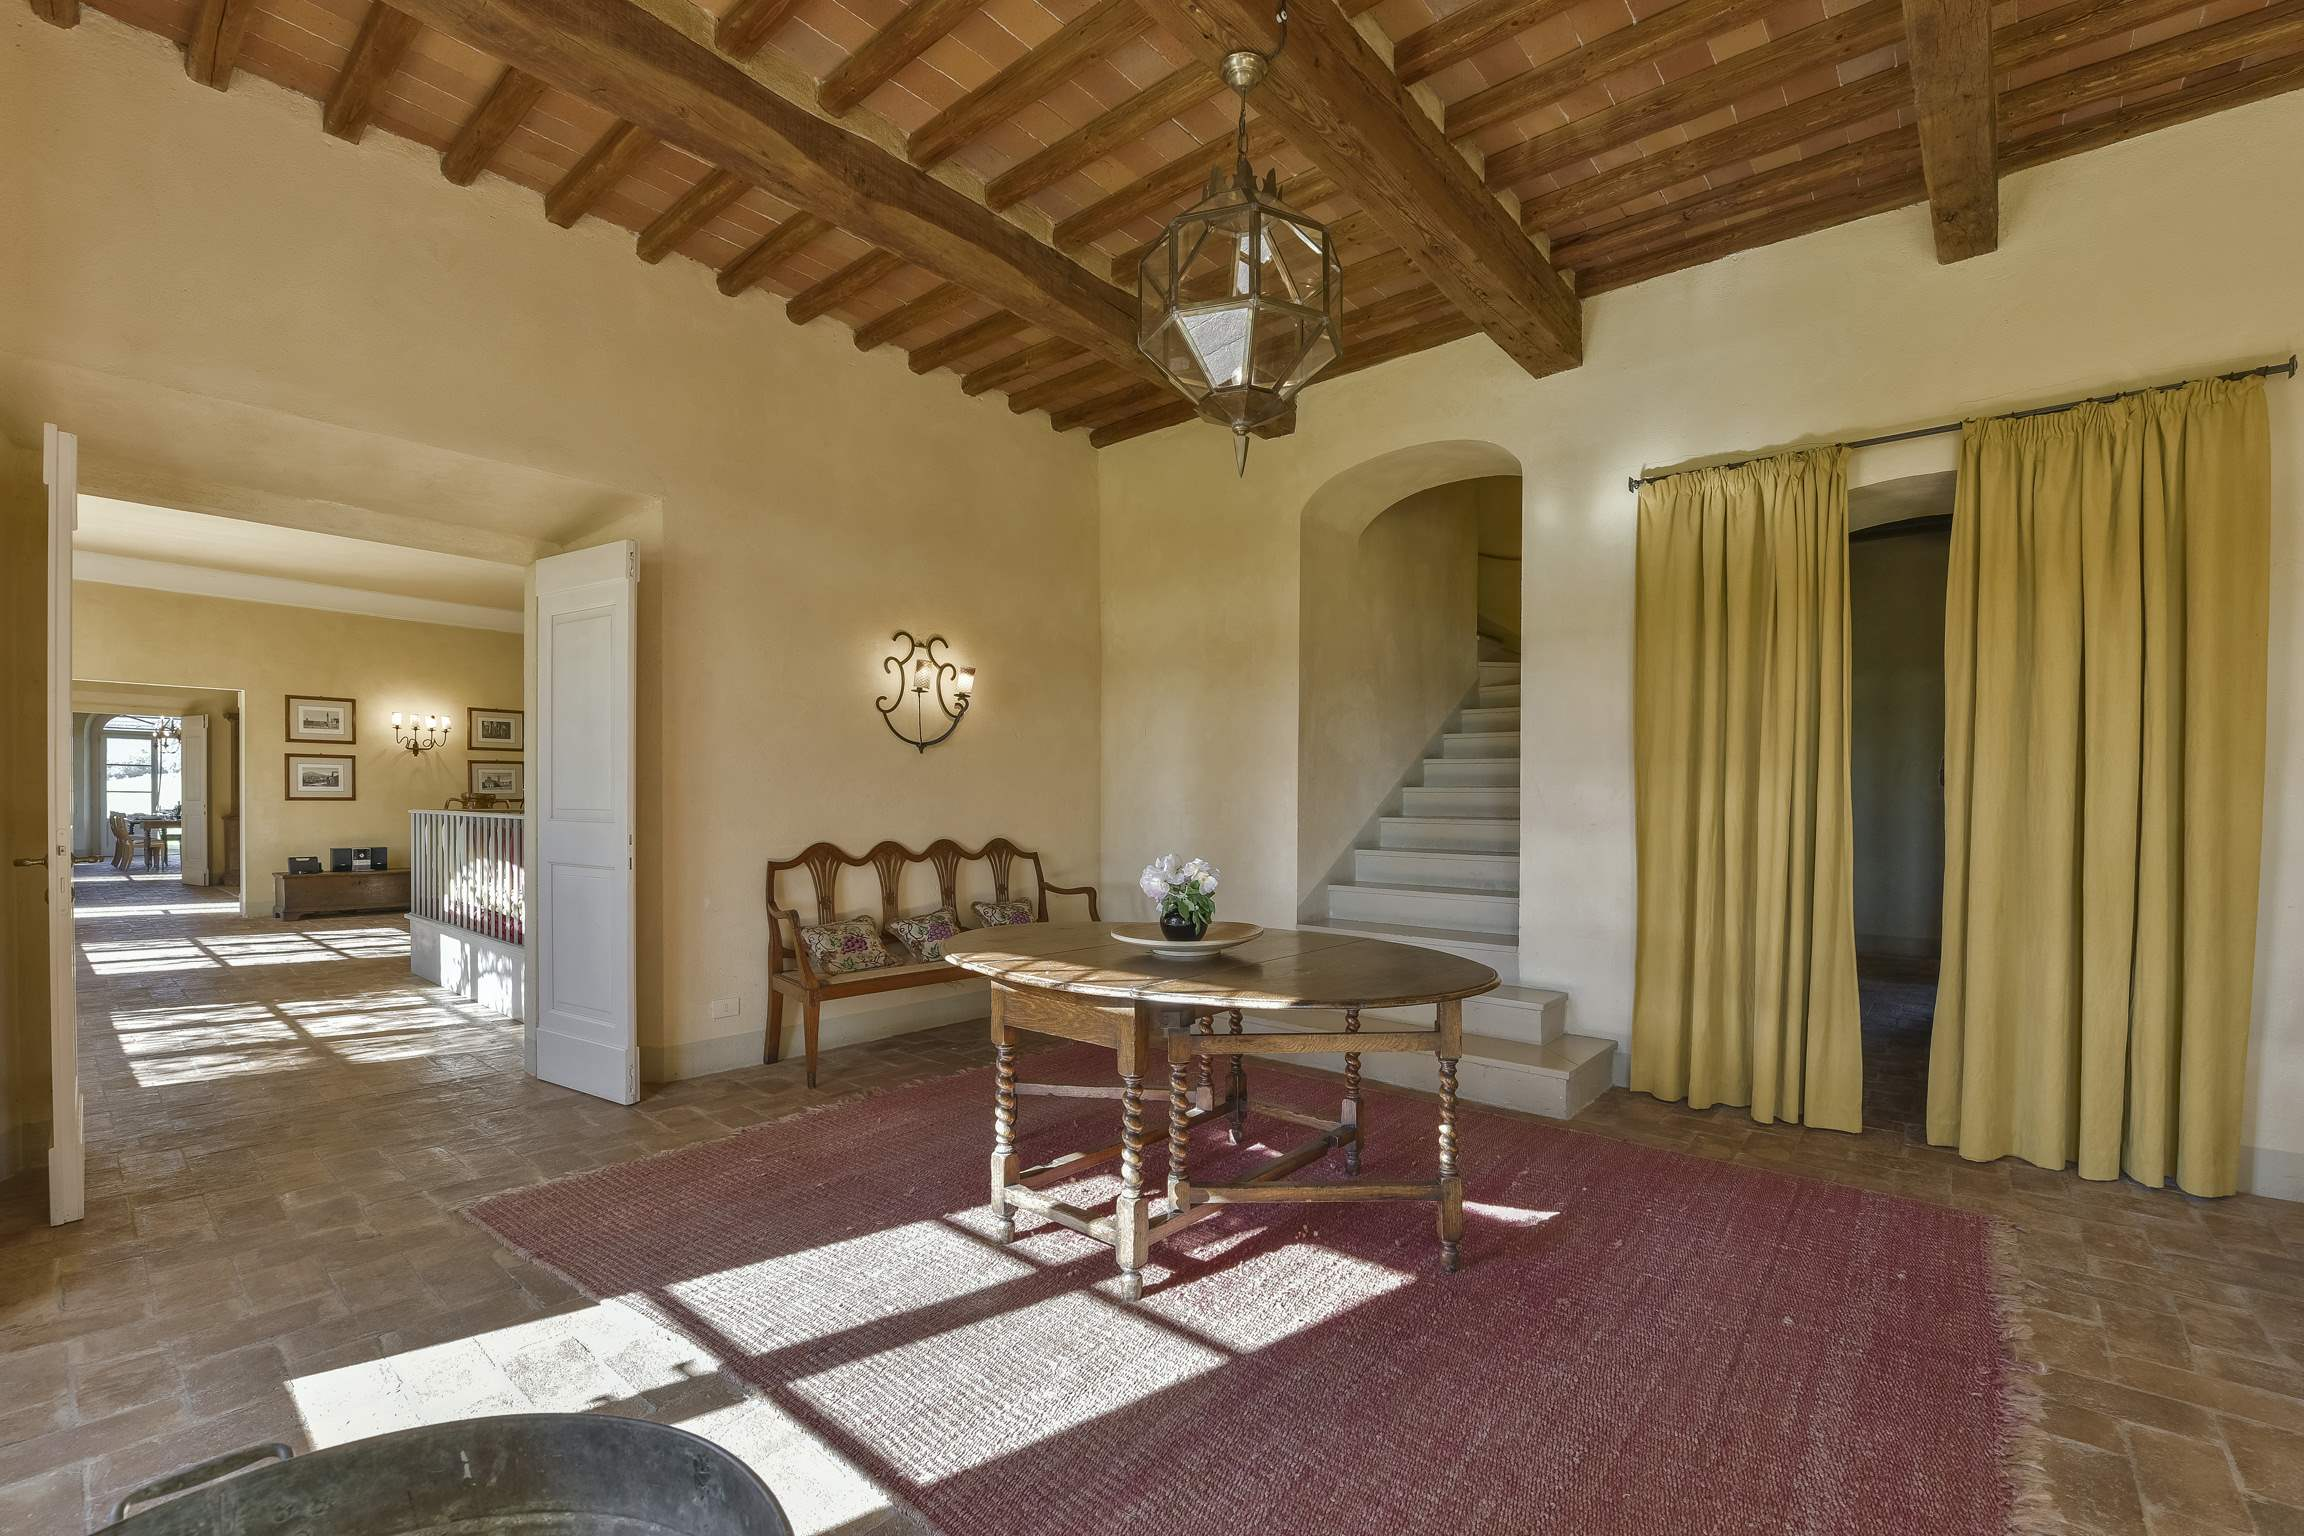 Villa Maremma 1, 7 bedroom villa in South Tuscany - Maremma, Tuscany Photo #9